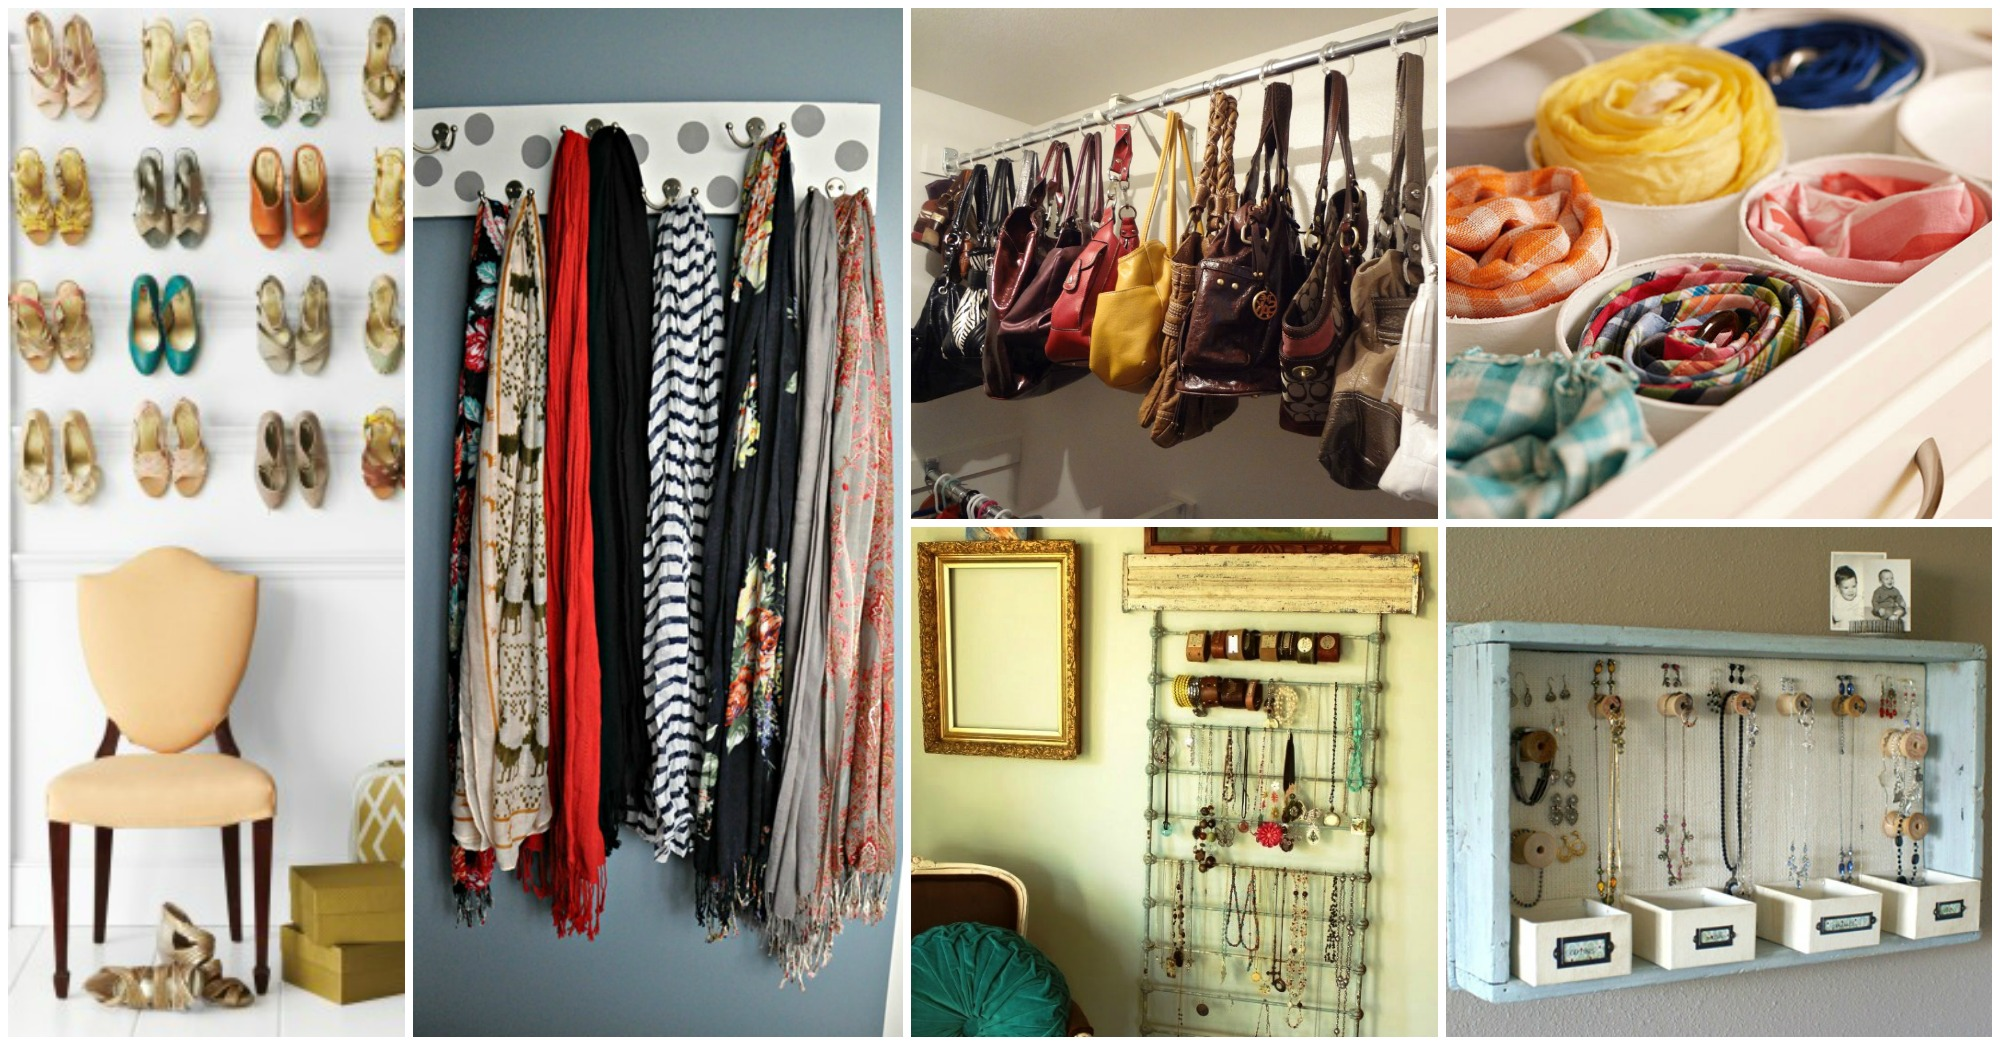 25 Seriously Life-Changing Storage Ideas Every Woman Should Know